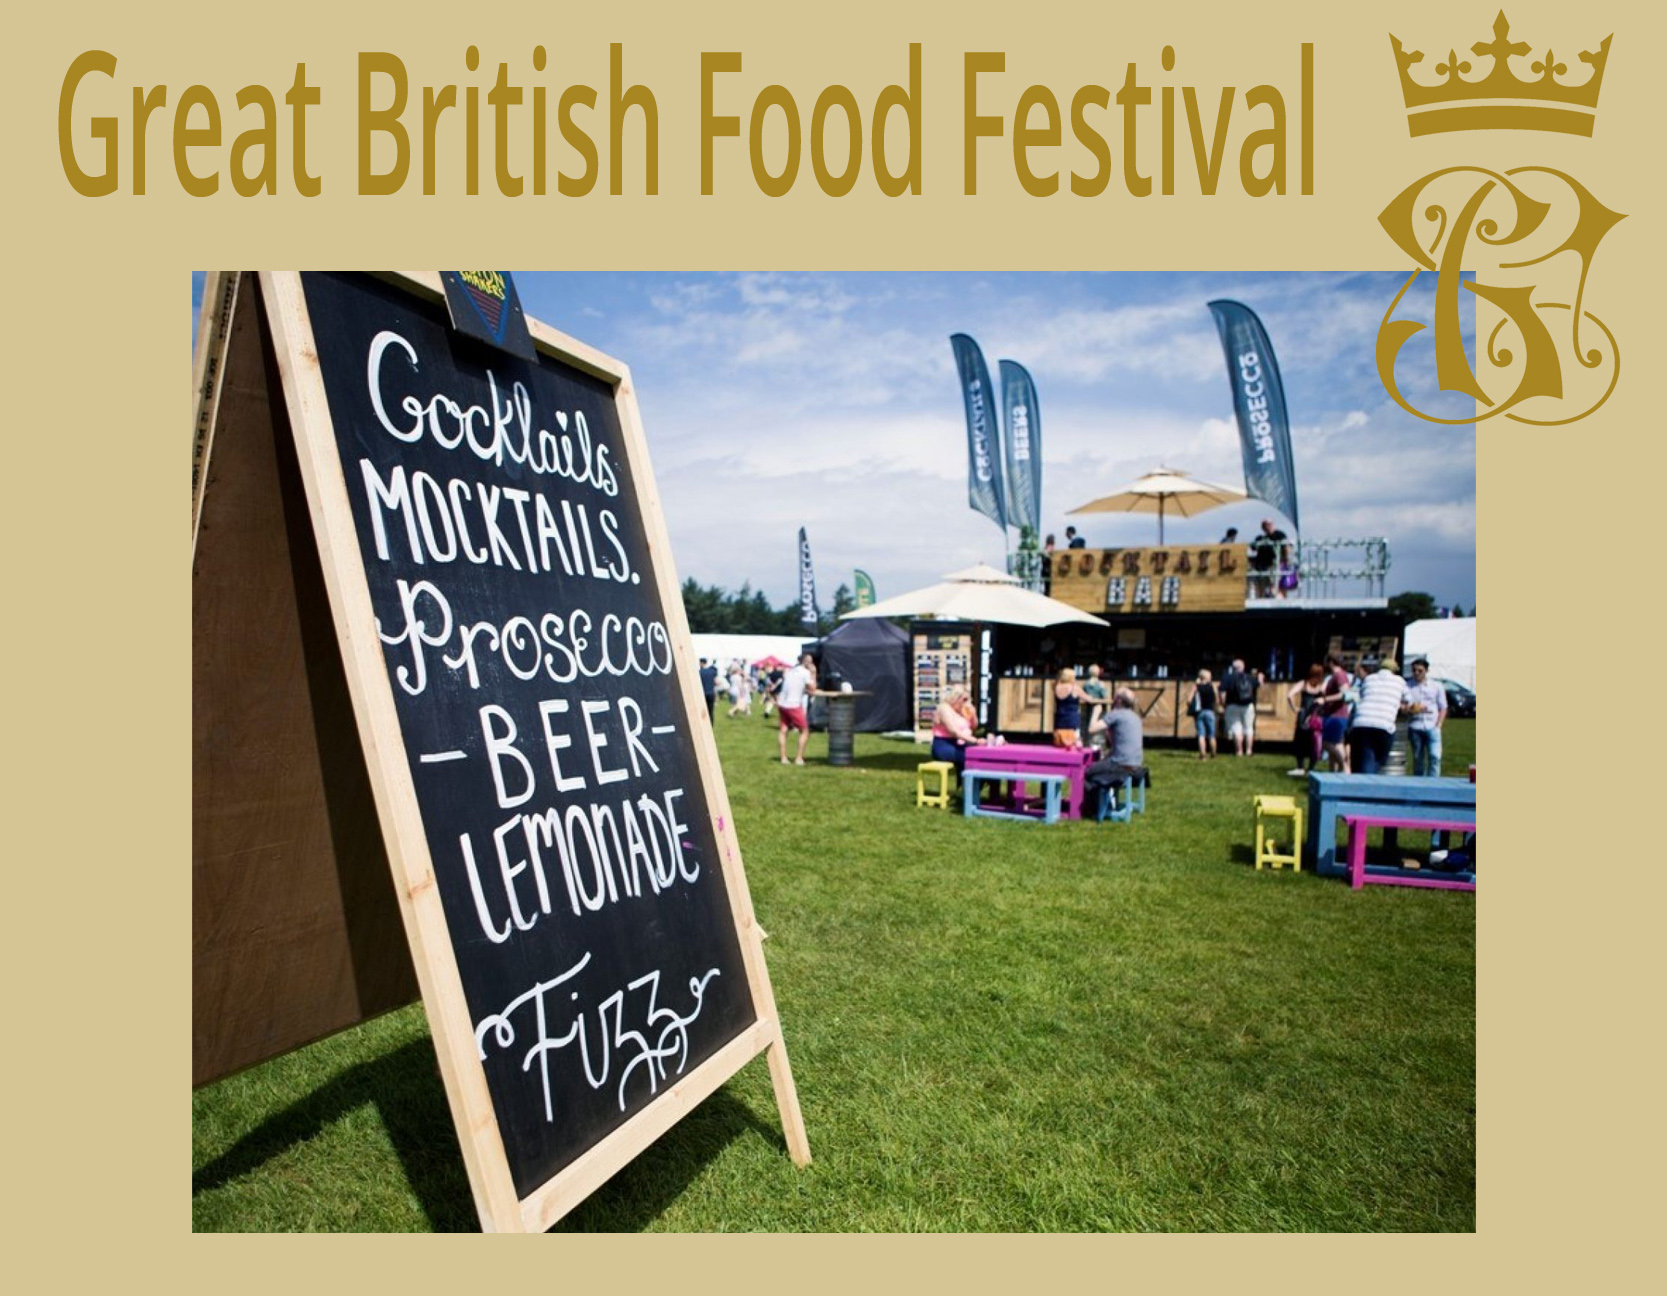 Great British Food Festival